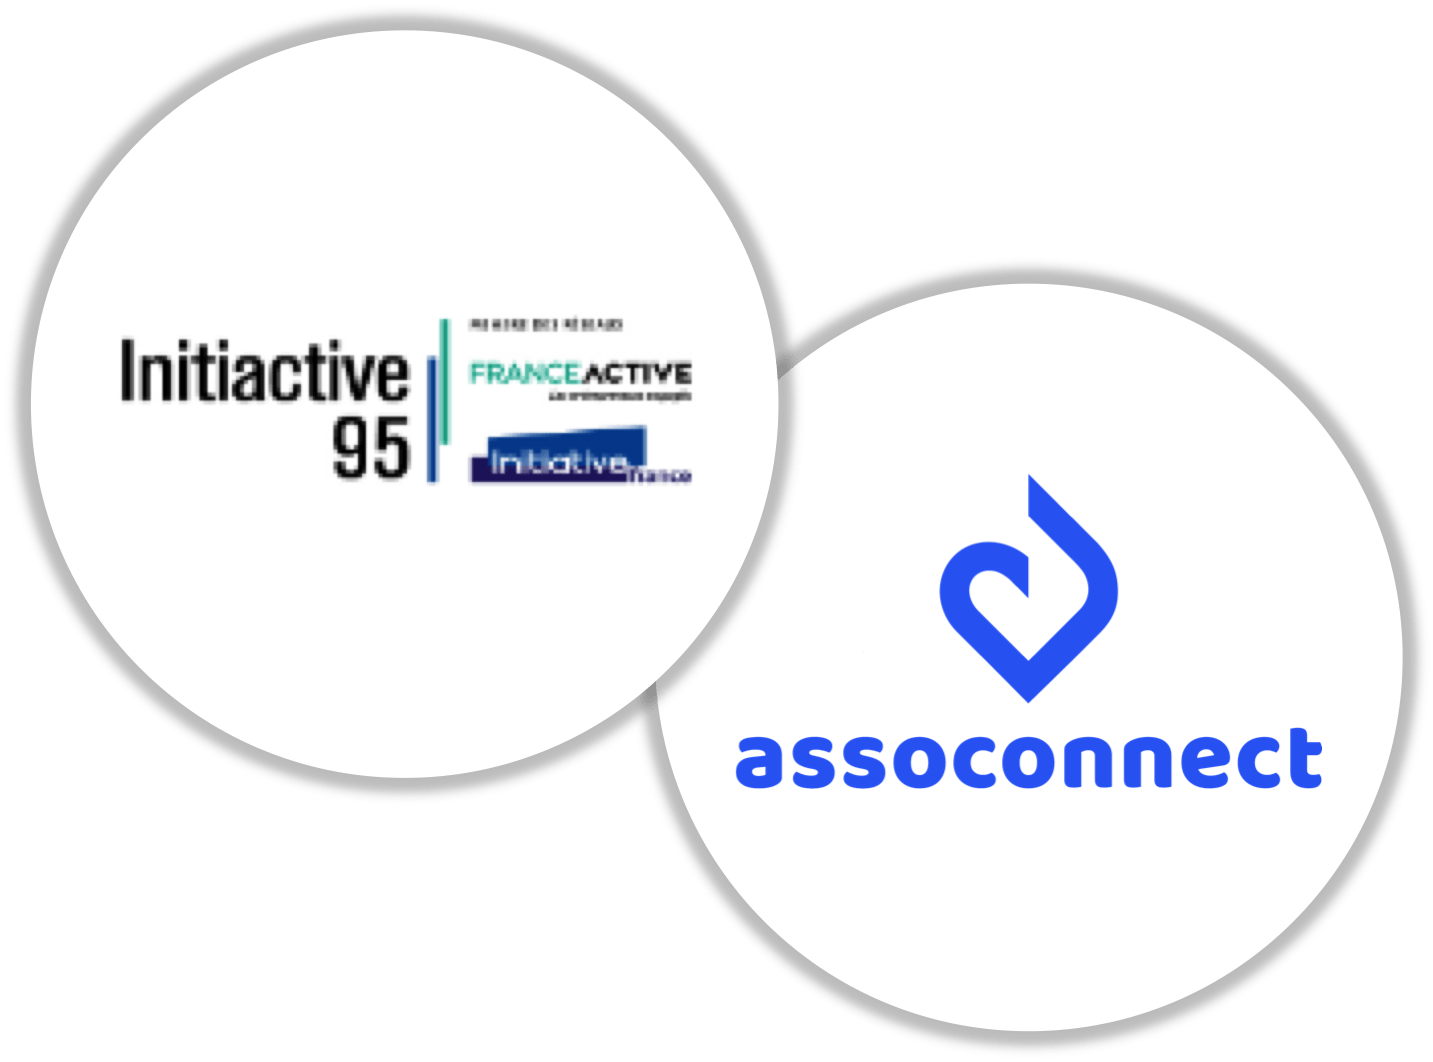 AssoConnect Initiactive 95